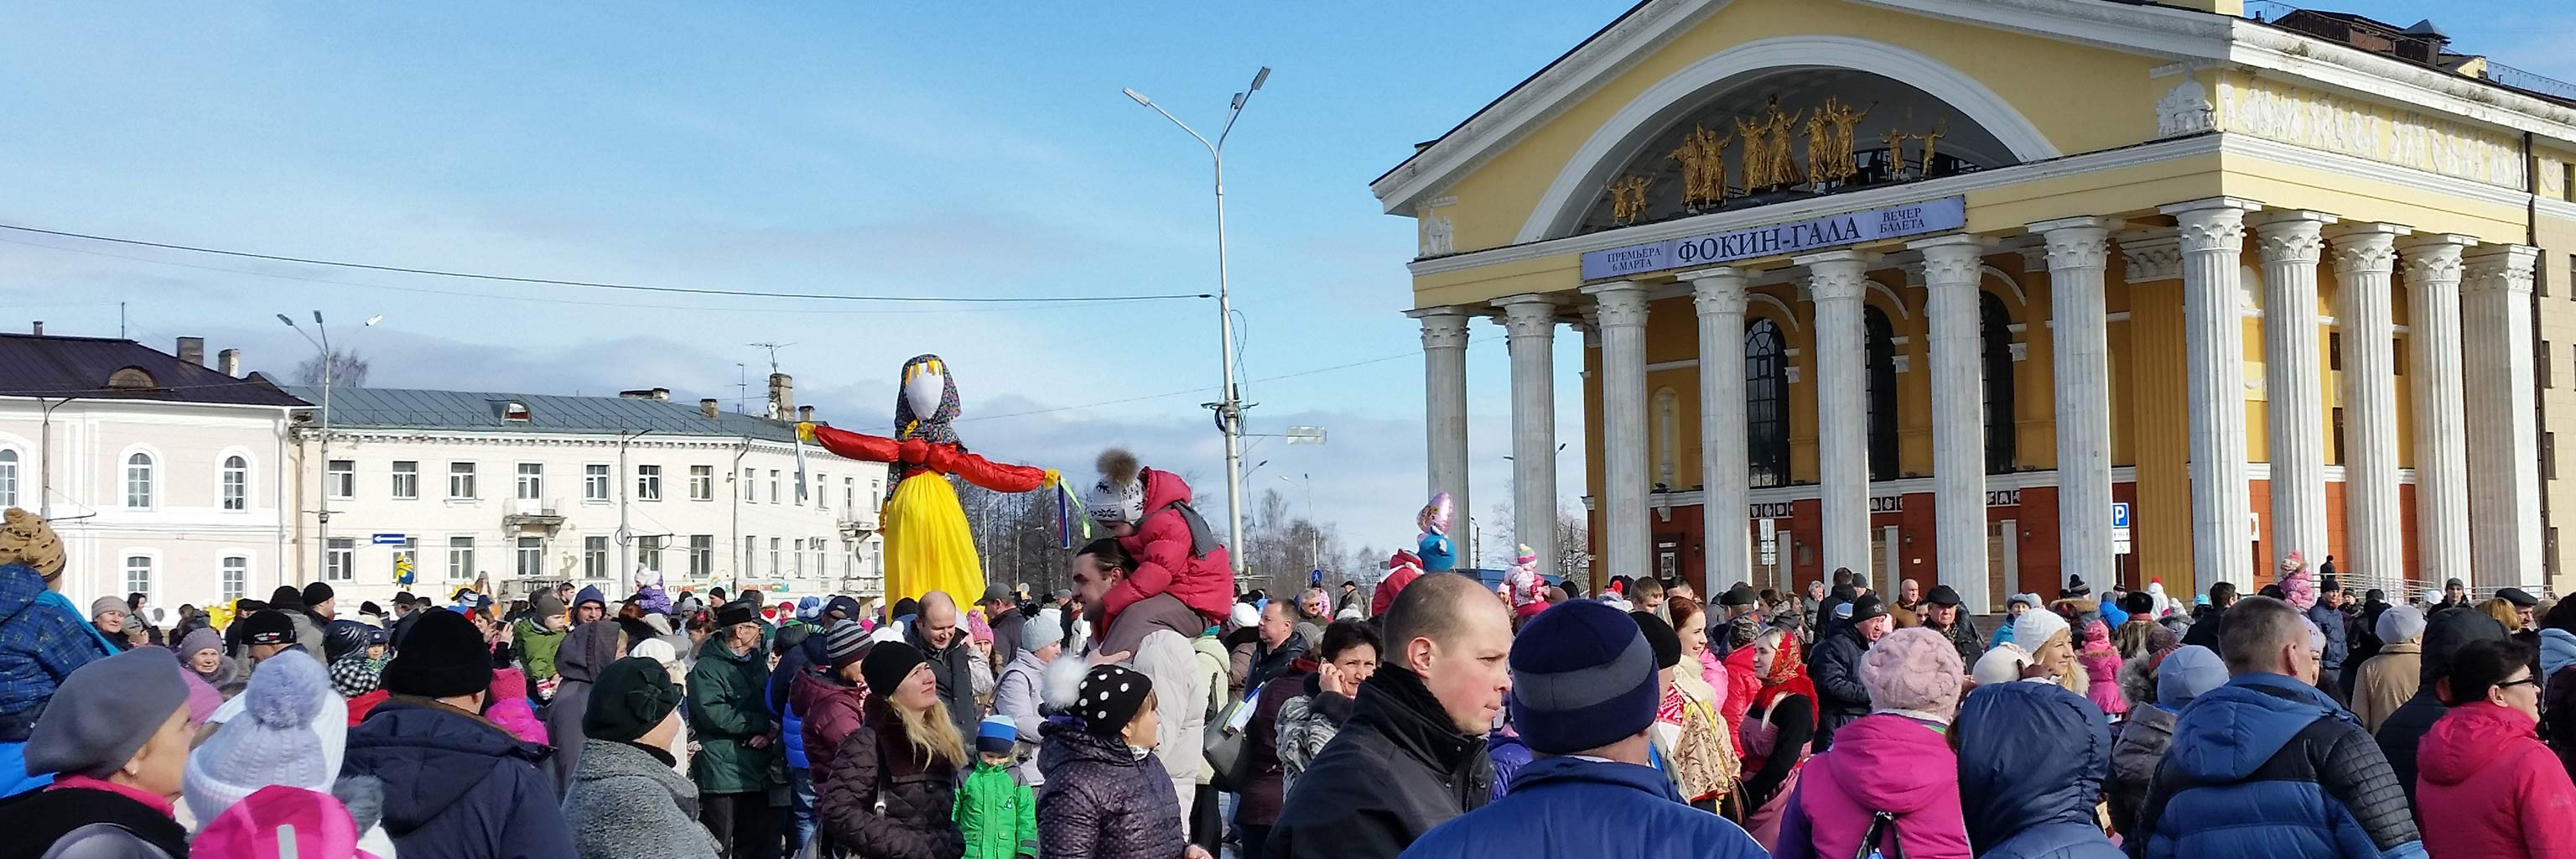 Event in Russia with crowd of people